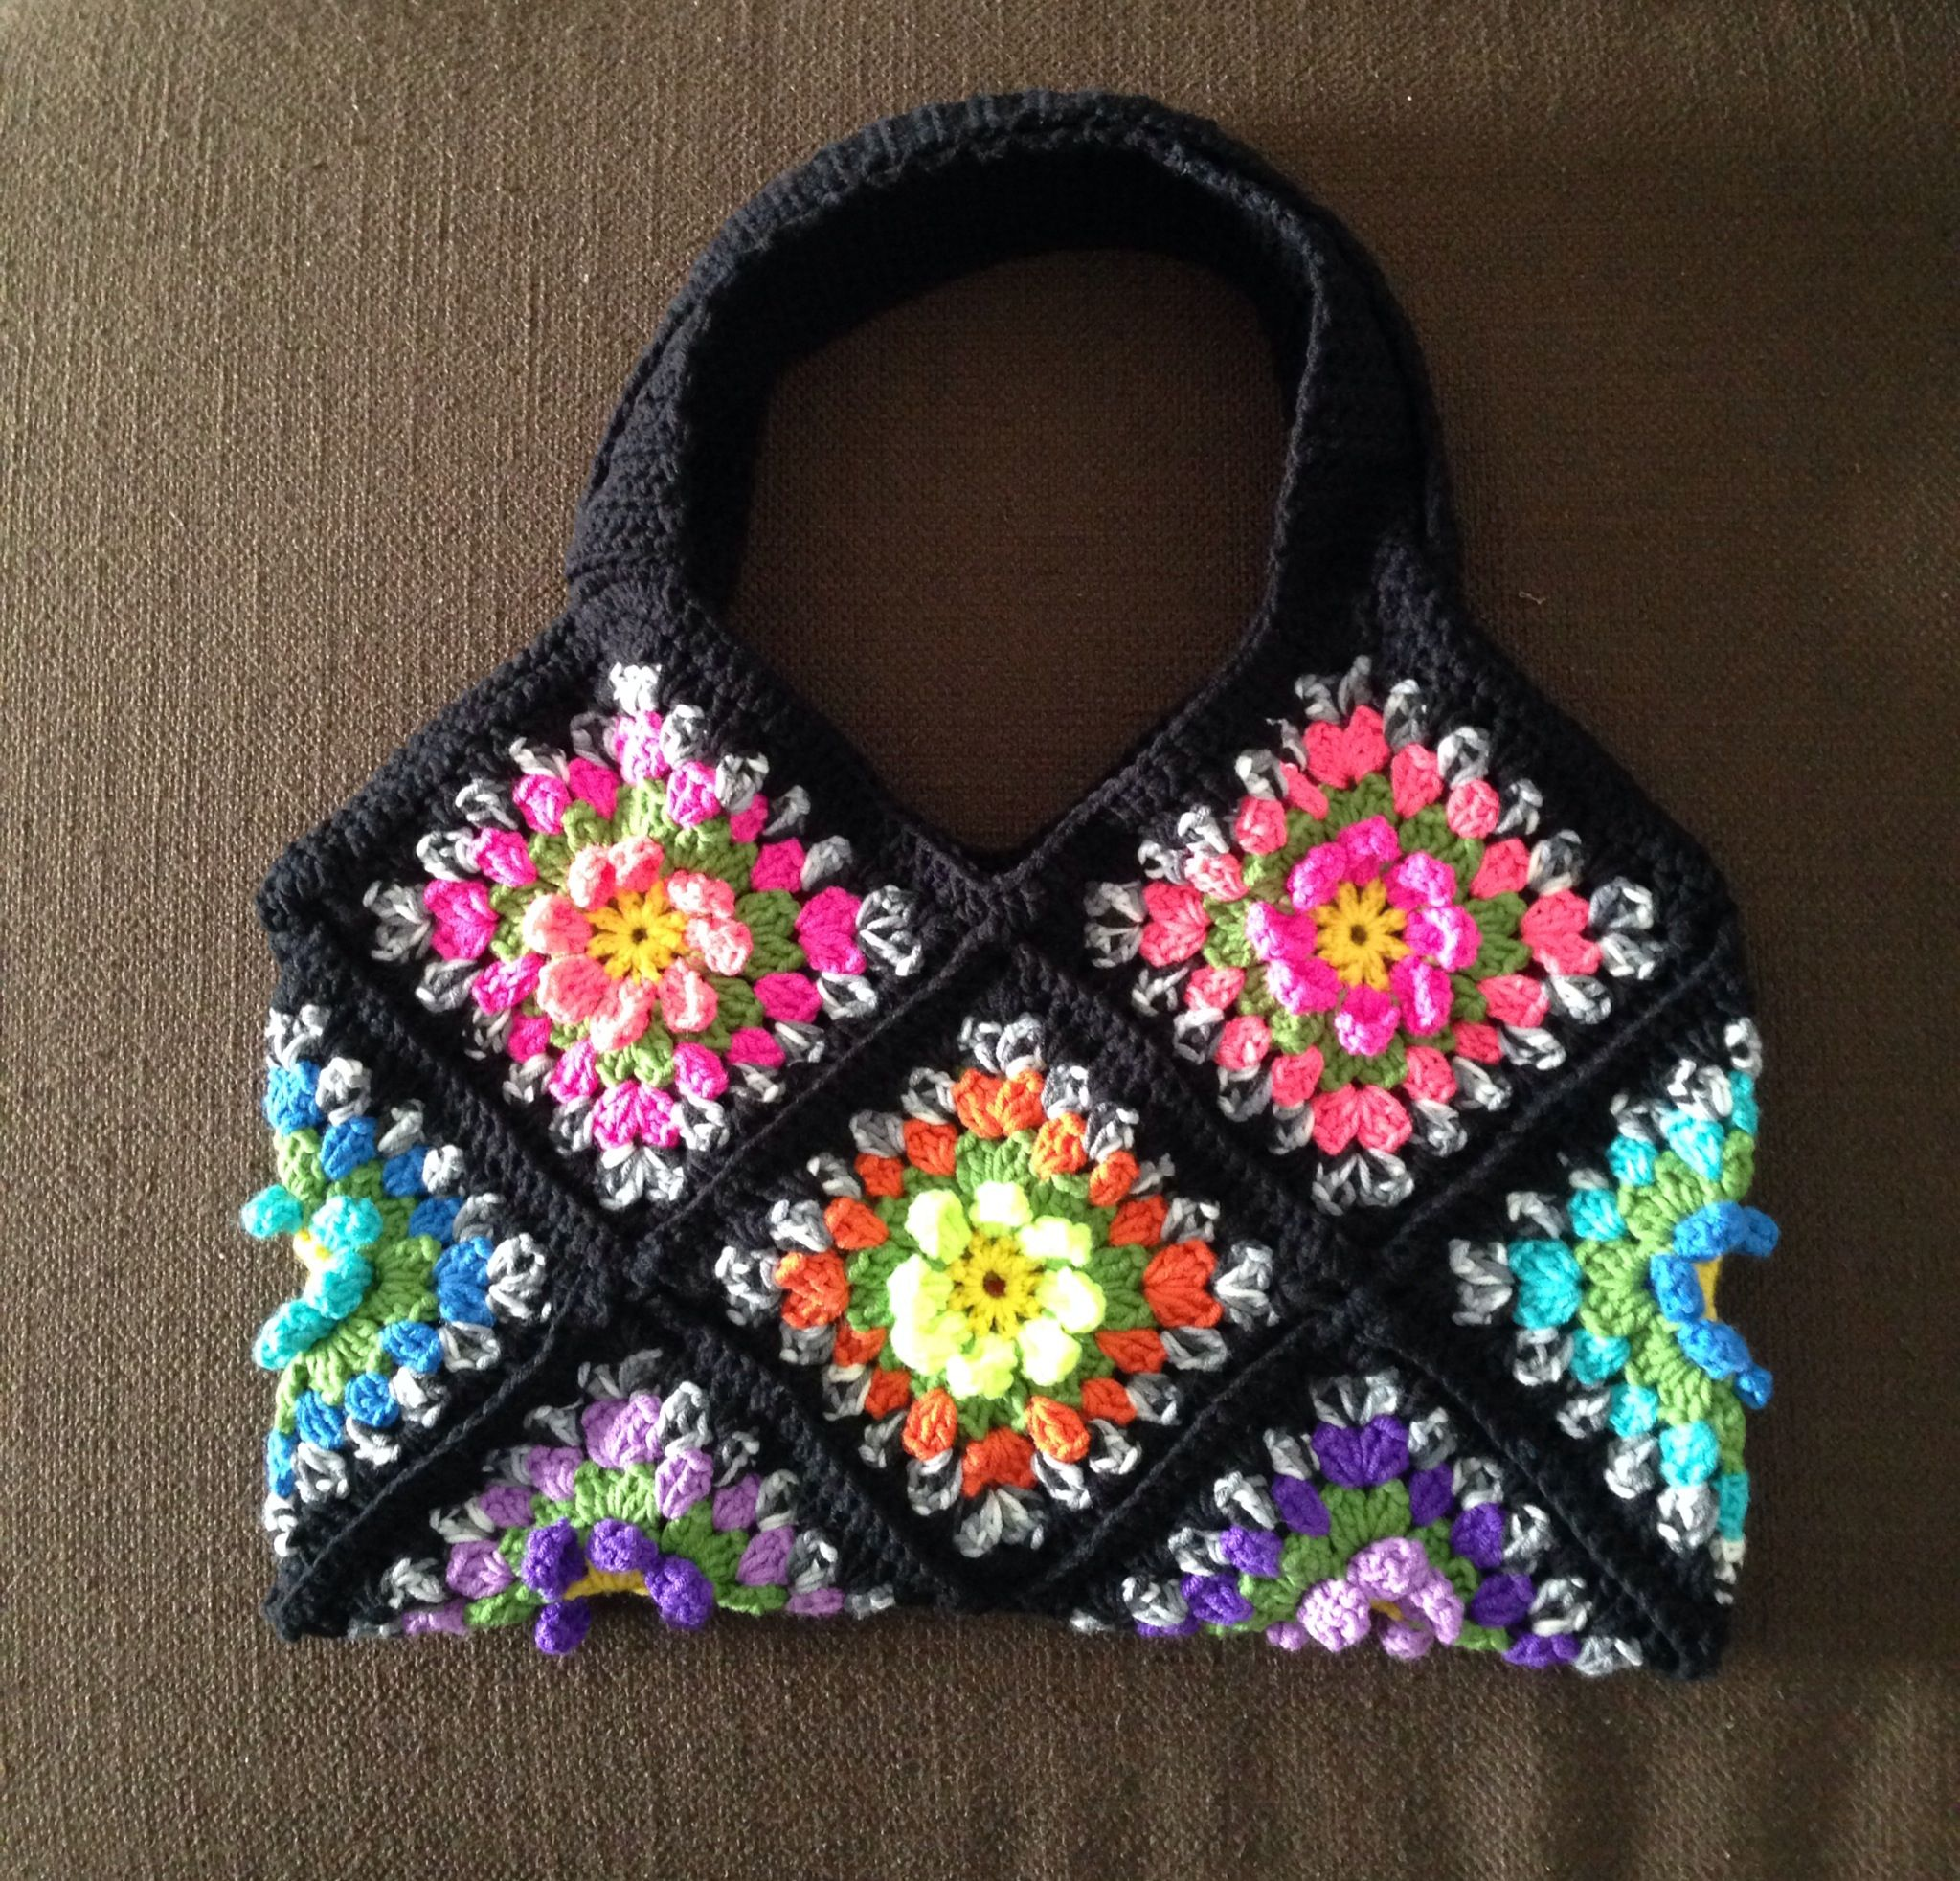 Crochet Handbag - 3D Flower Garden Granny Square Pattern My Crochet ...